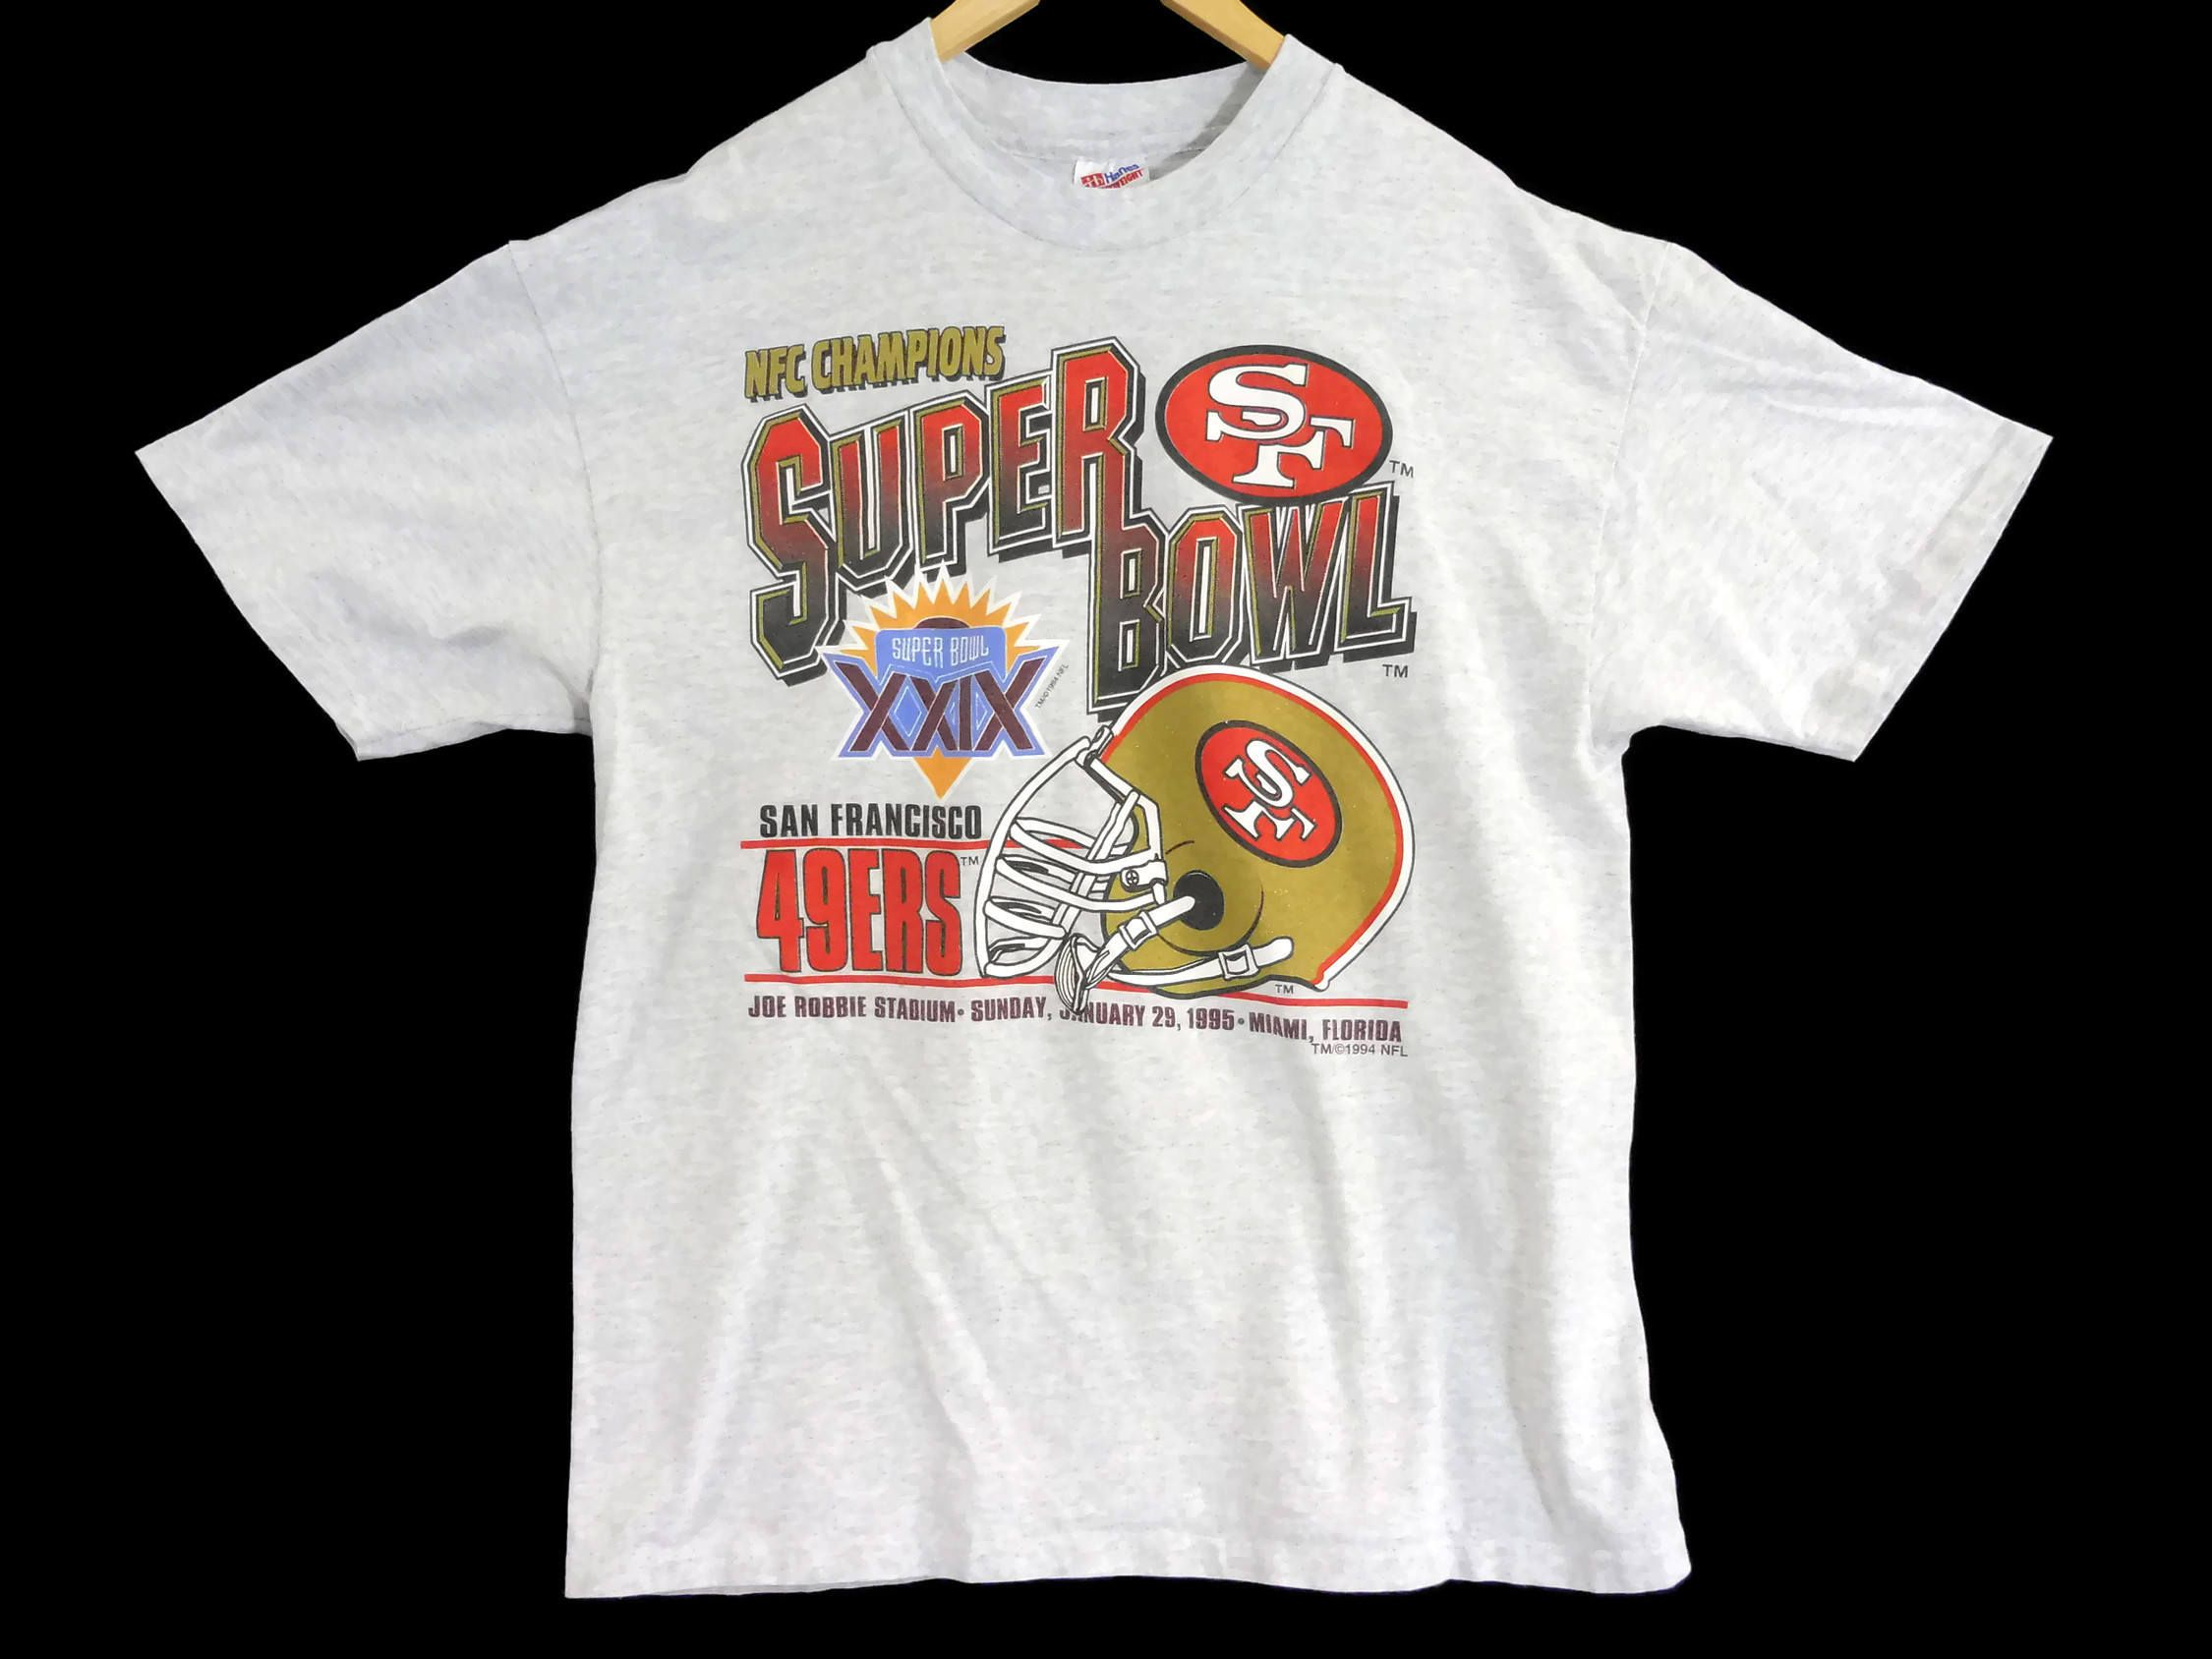 VTG 1994 SF 49ers T-Shirt - Large - Superbowl Champions 1995 - Football -  NFL - Hanes Heavyweight - Vintage Tee - Vintage Clothing - by BLACKMAGIKA  on Etsy 2cf71994b